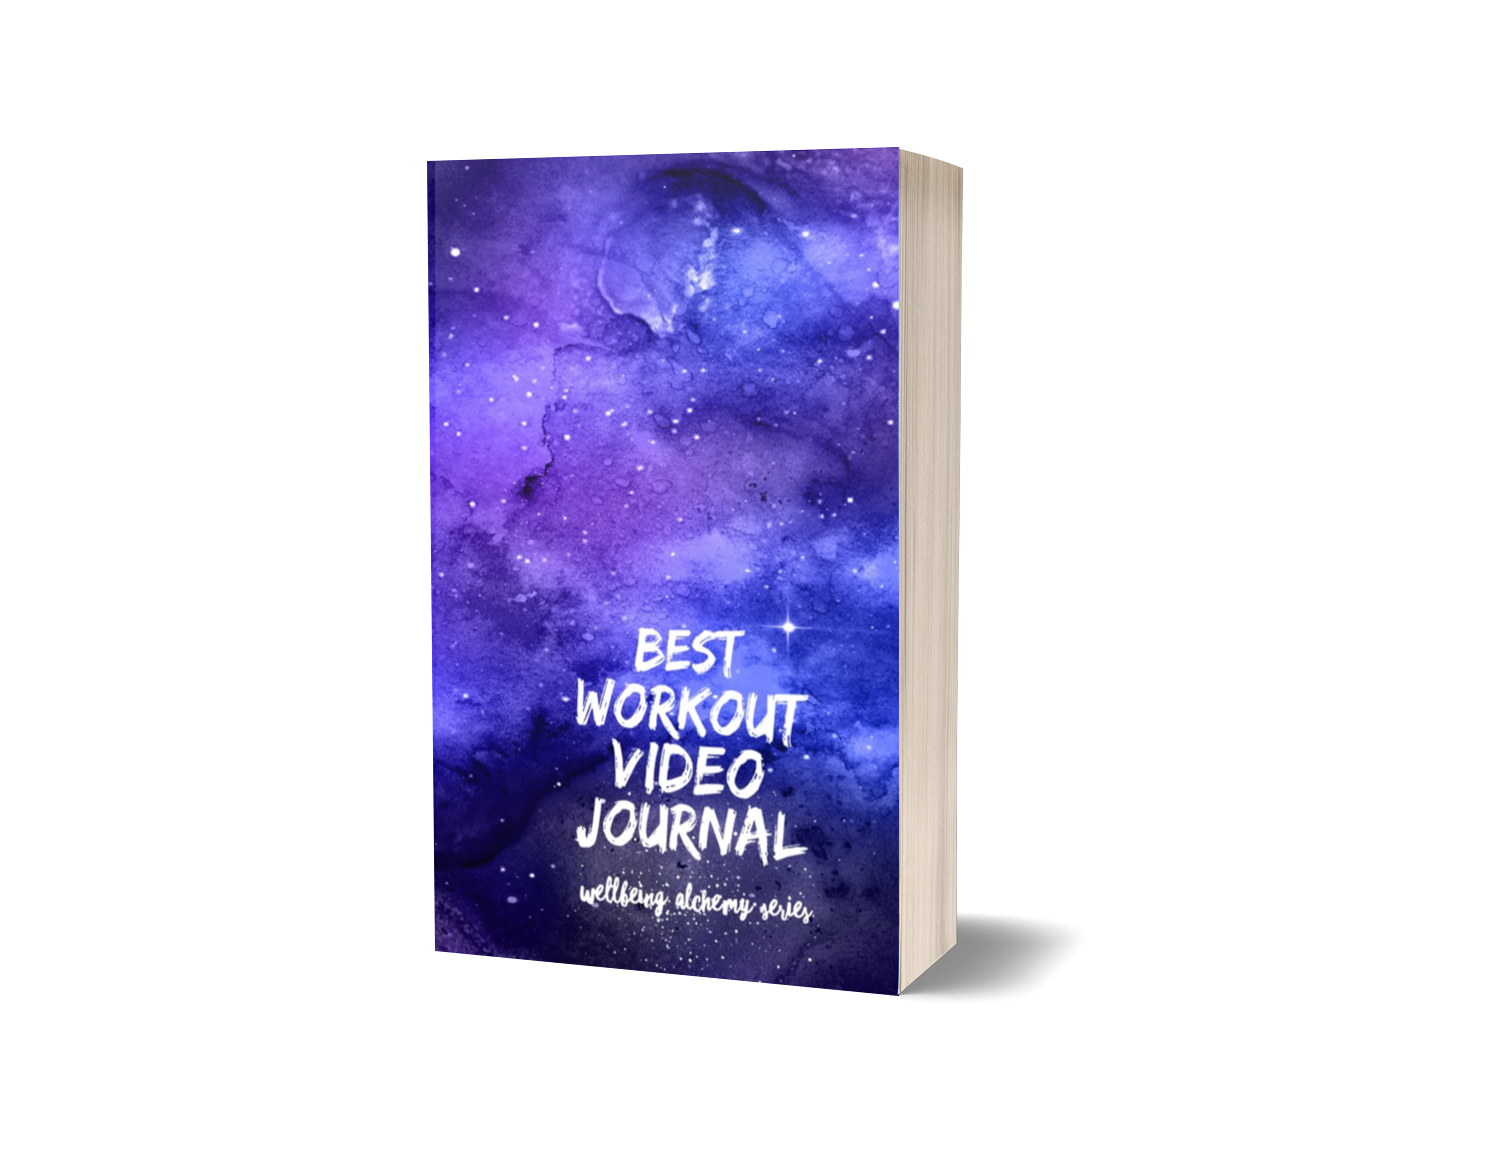 Best WorkOut Video Journal